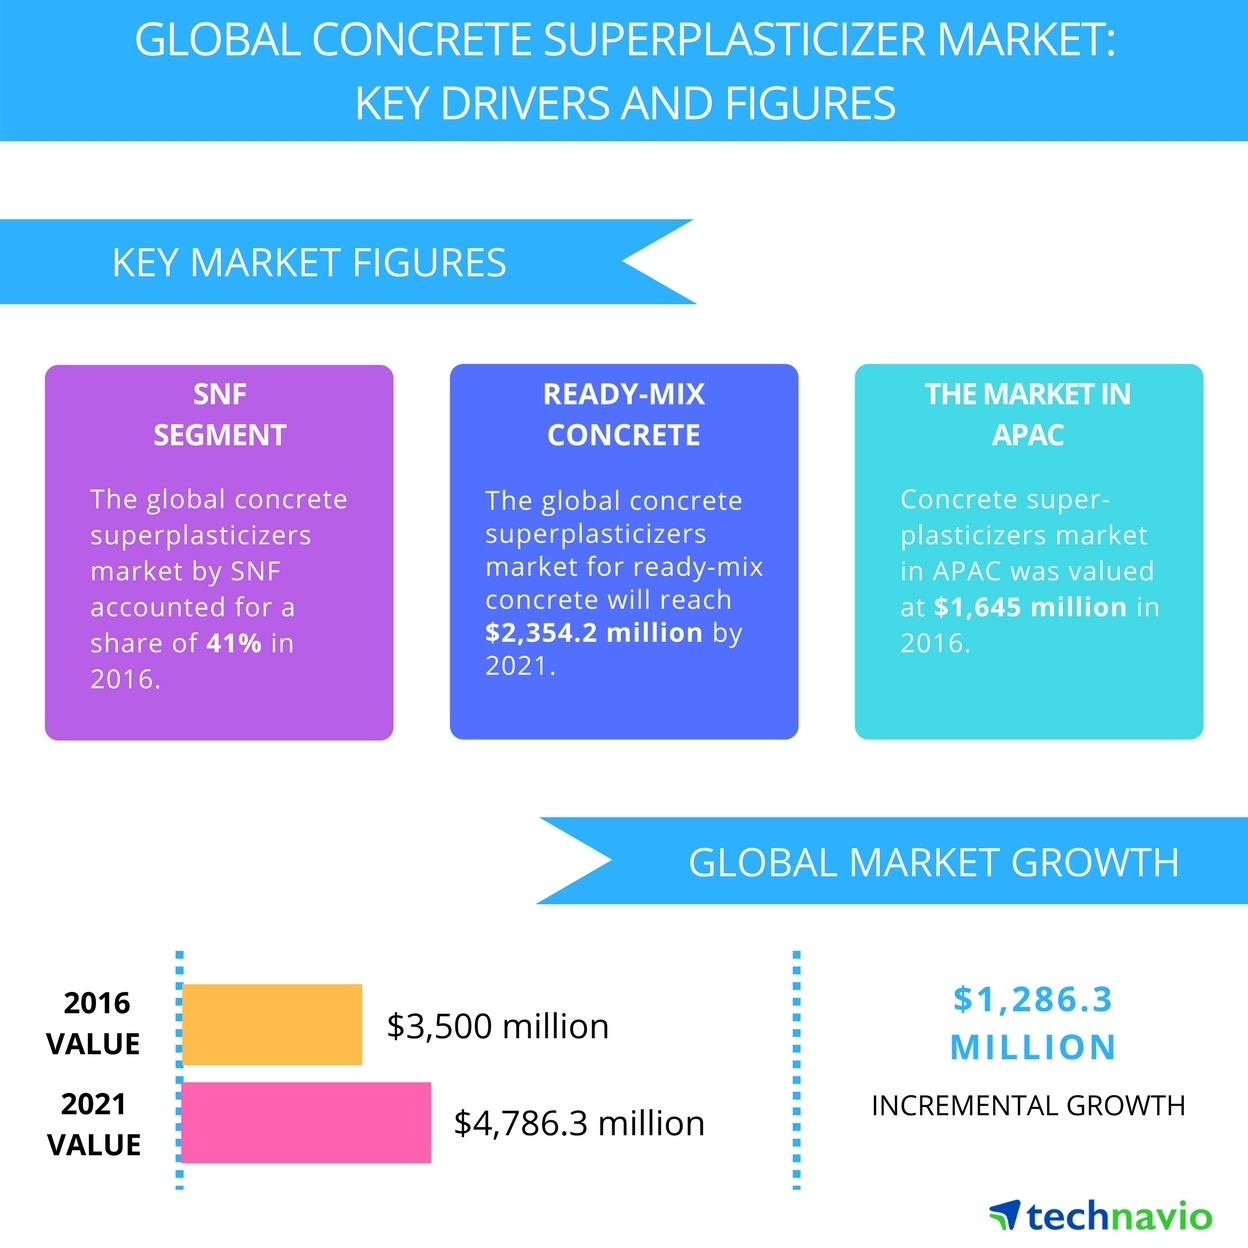 Top 5 Vendors in the Concrete Superplasticizers Market from